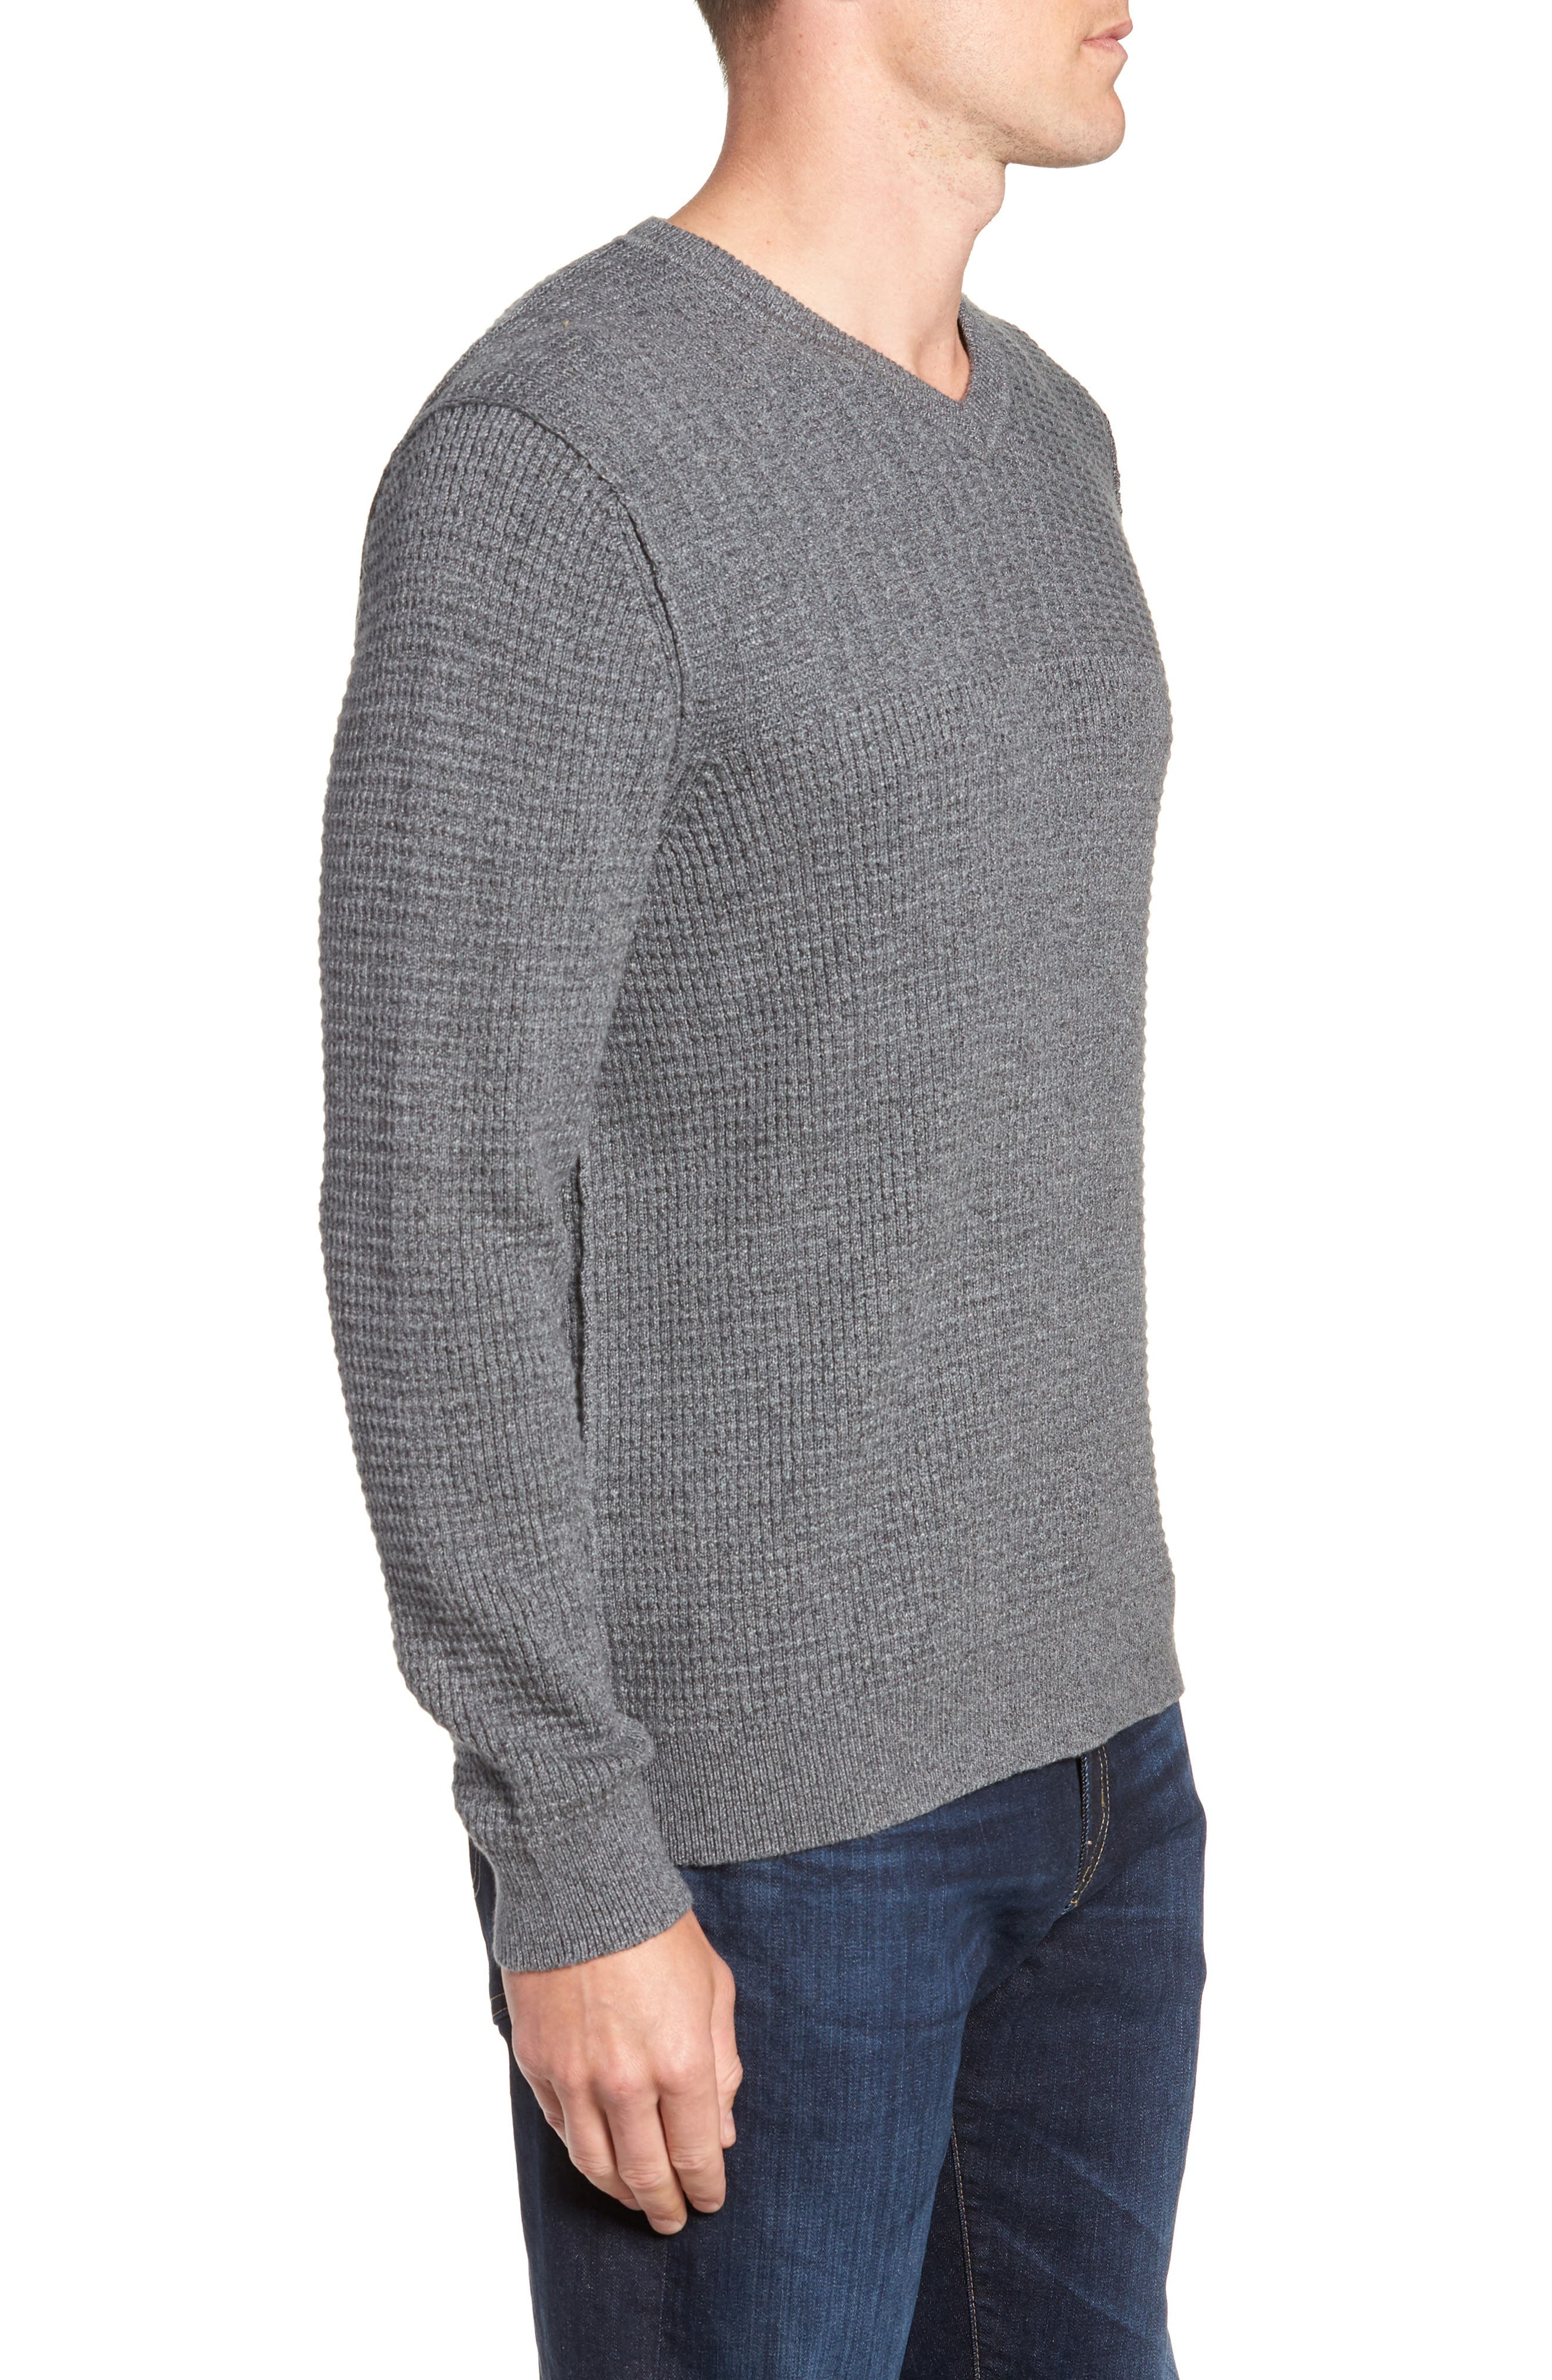 TOMMY BAHAMA, Isidro V-Neck Regular Fit Sweater, Alternate thumbnail 3, color, CAVE